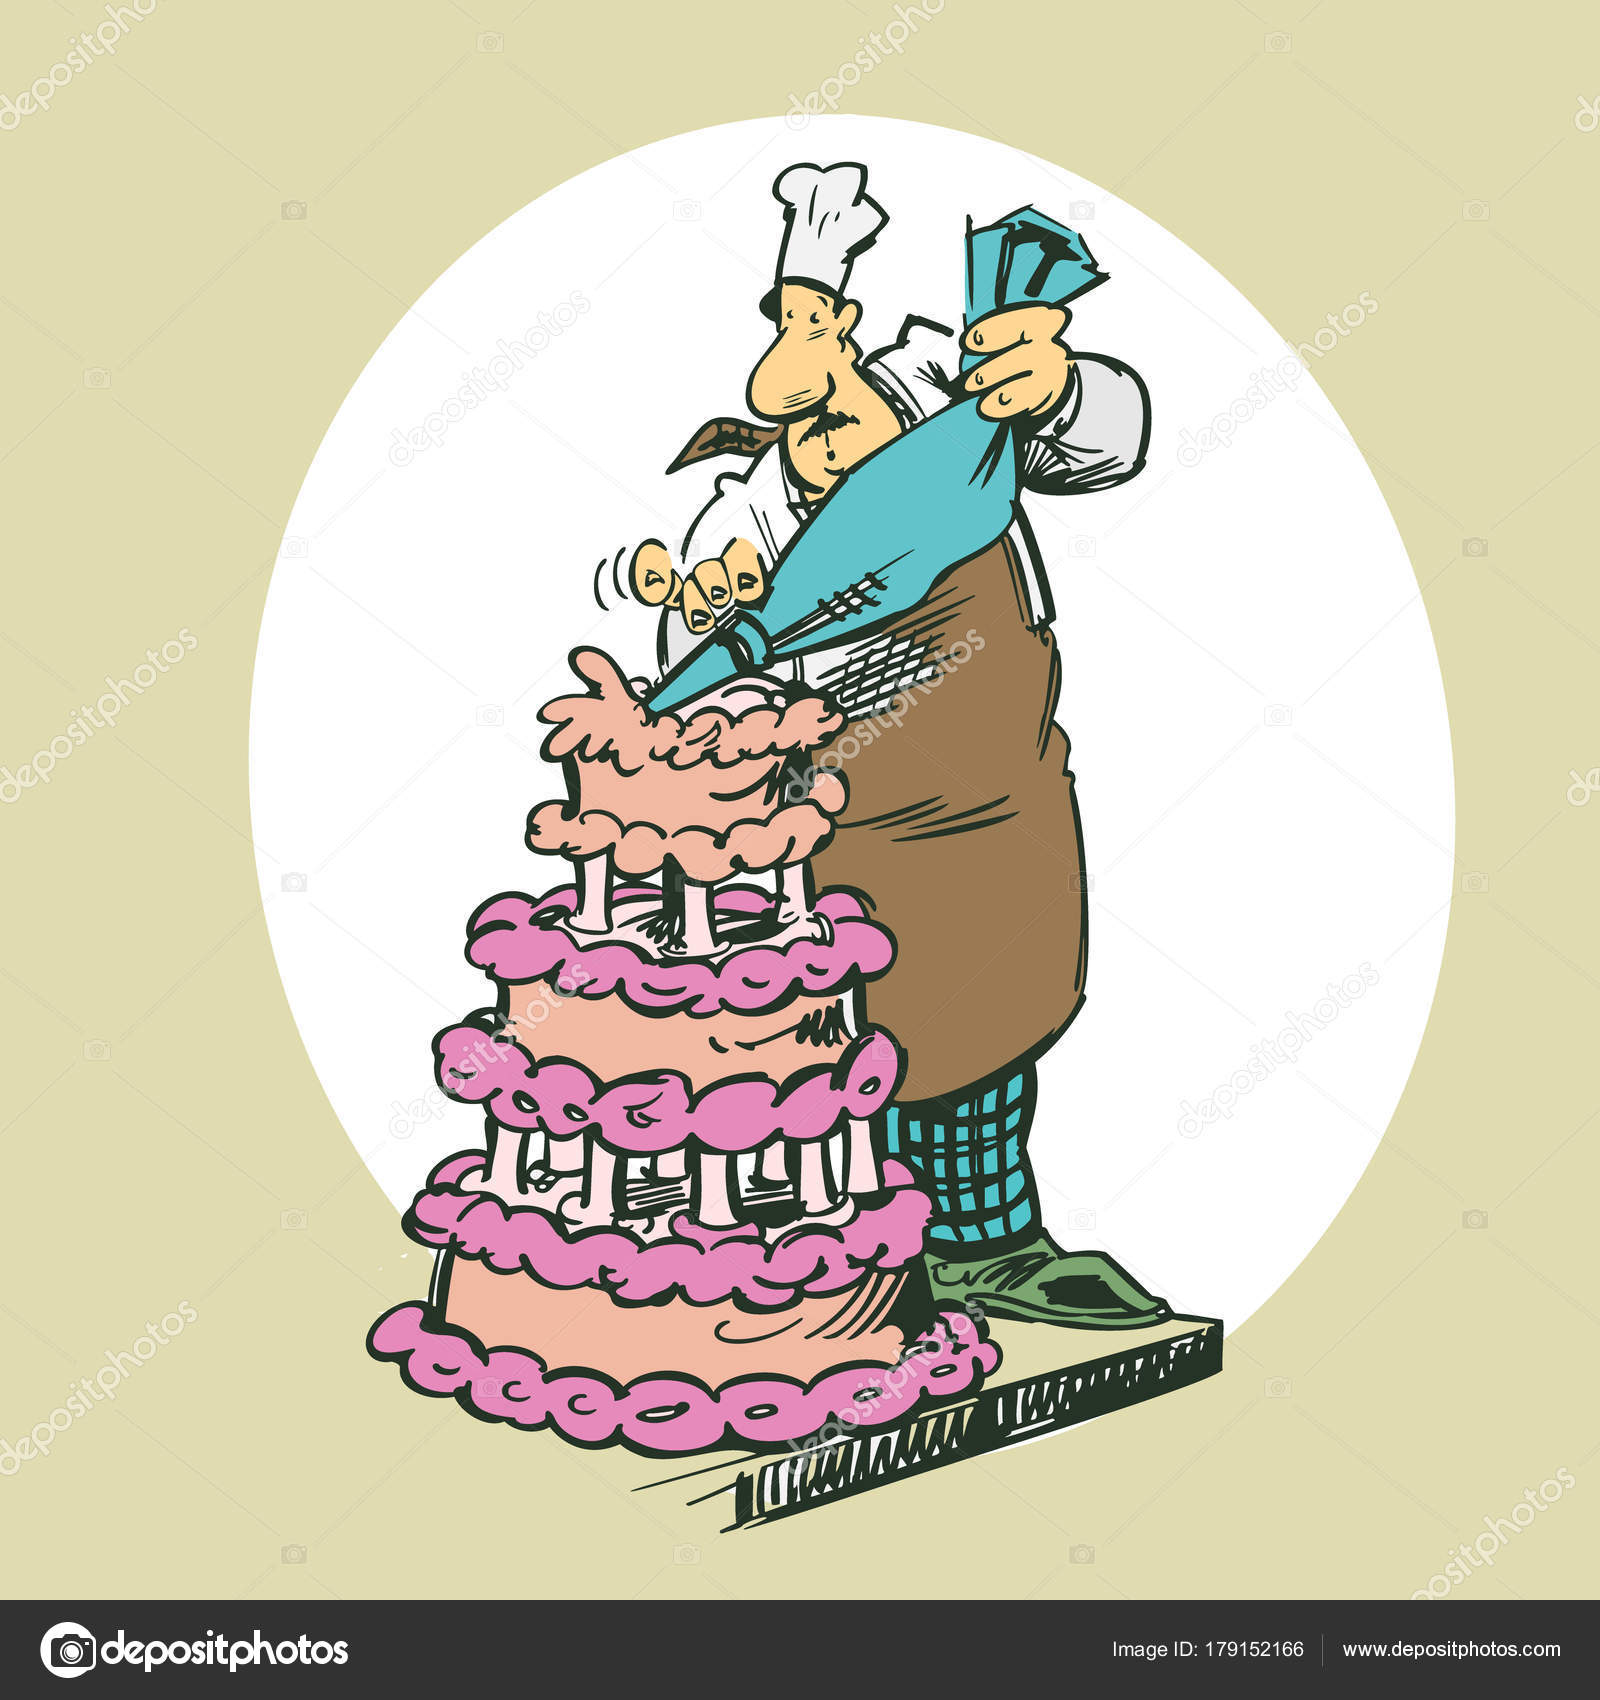 Kuchen Clipart Bäcker Machen Kuchen Cliparts Cartoon Illustration Vektor